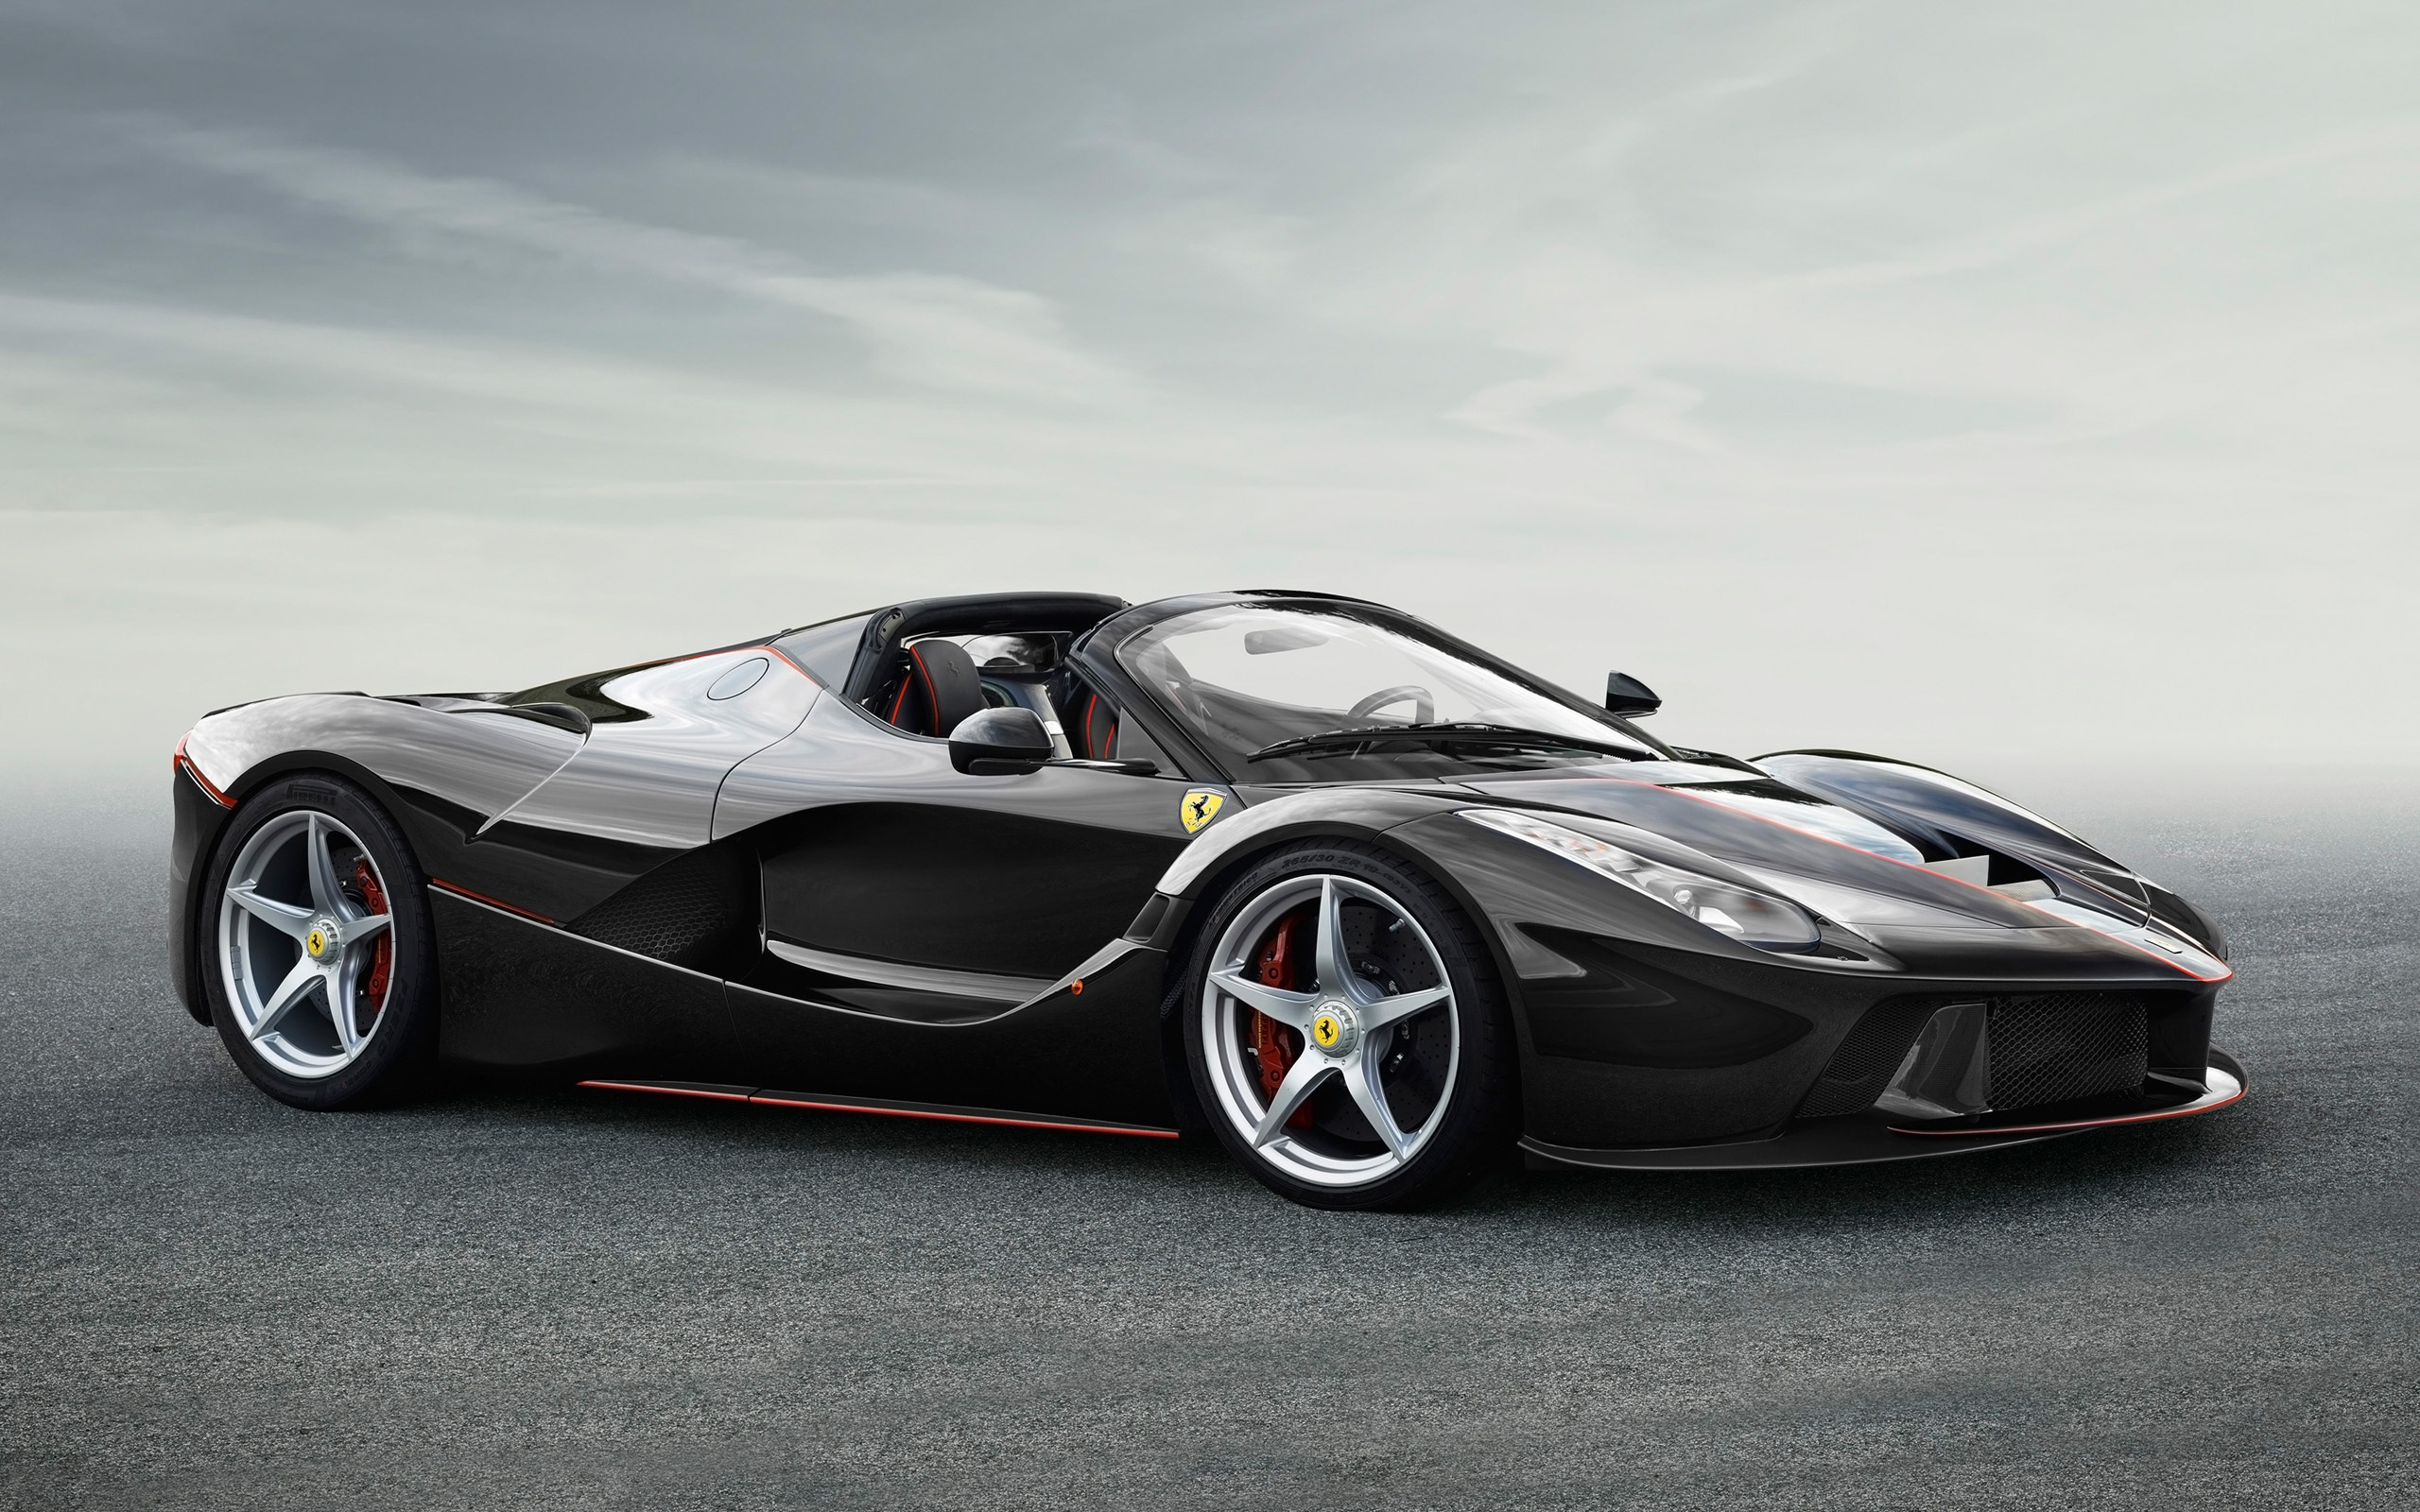 2017 Ferrari 488 Spider >> 2017 Ferrari LaFerrari Spider Wallpapers in jpg format for ...